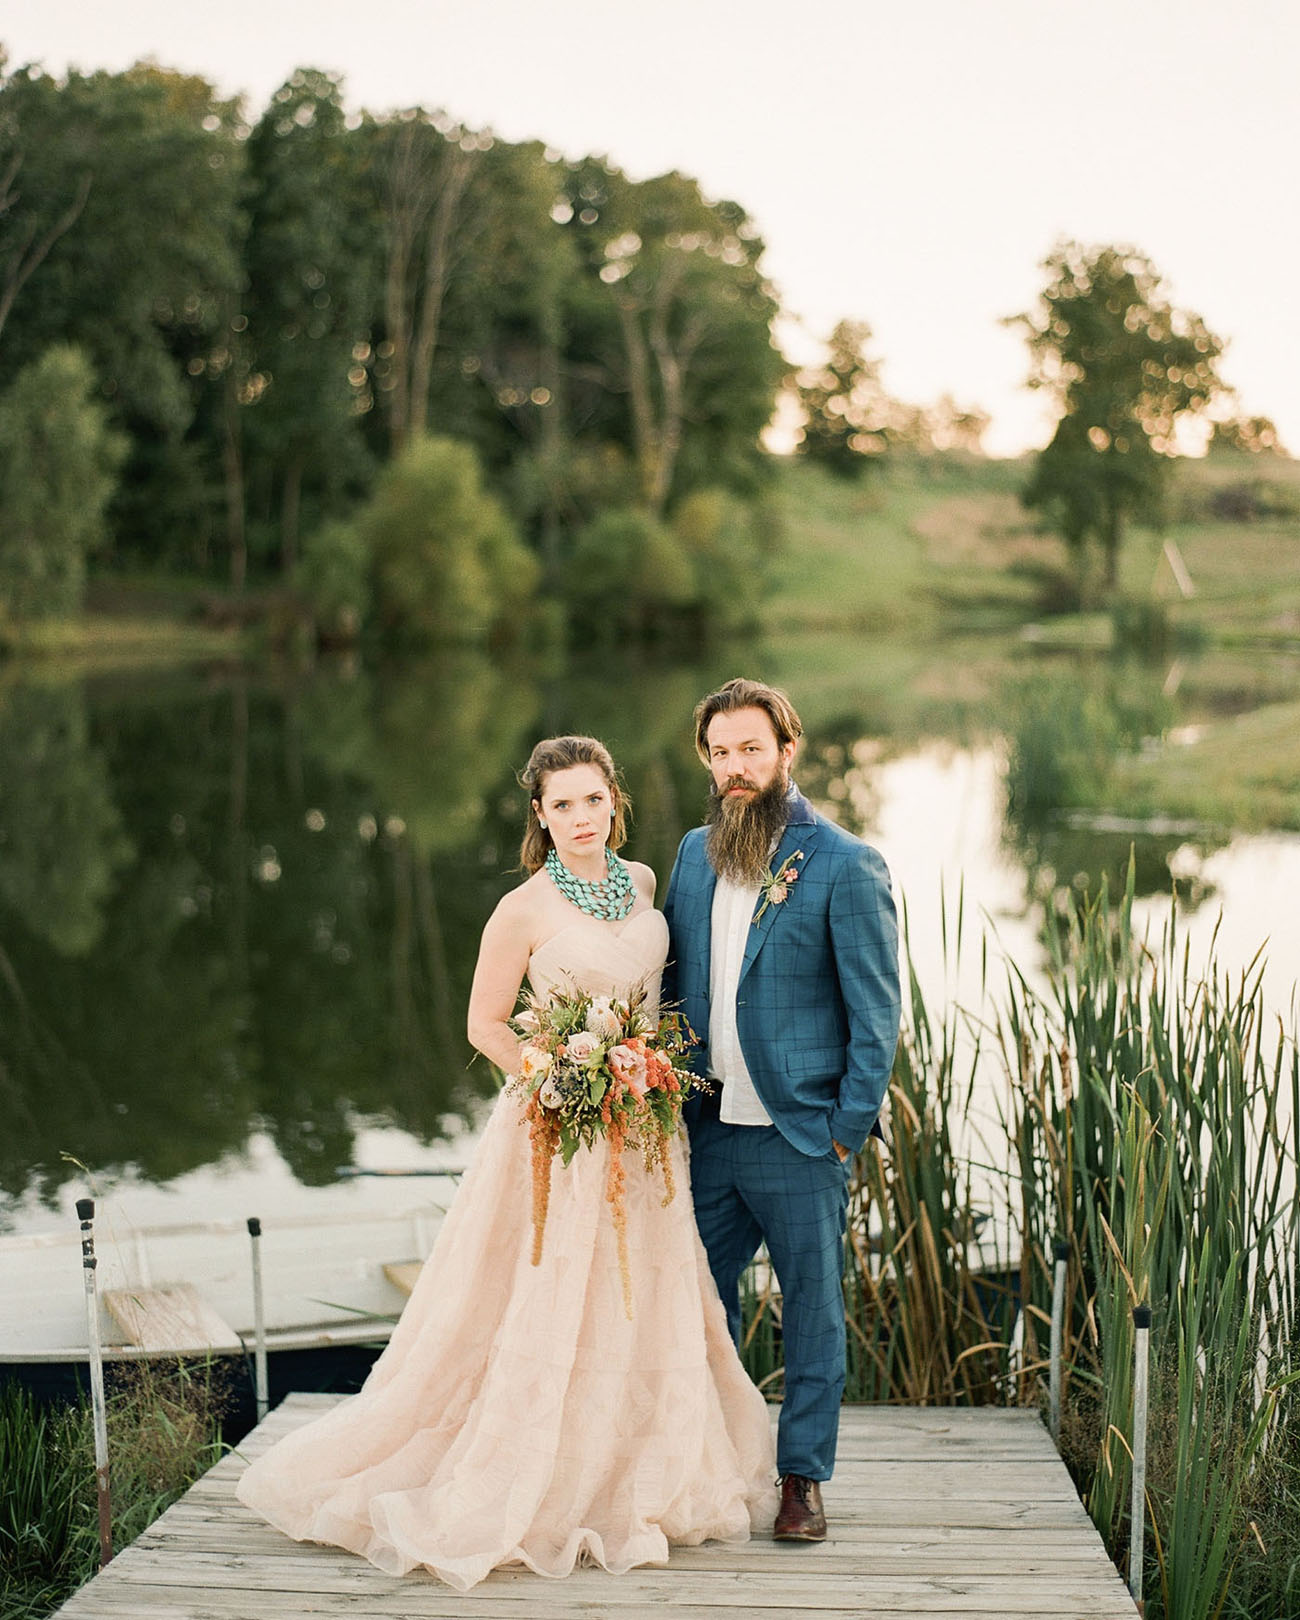 This southwest wedding inspirational shoot took place in Iowa and is full of charming details